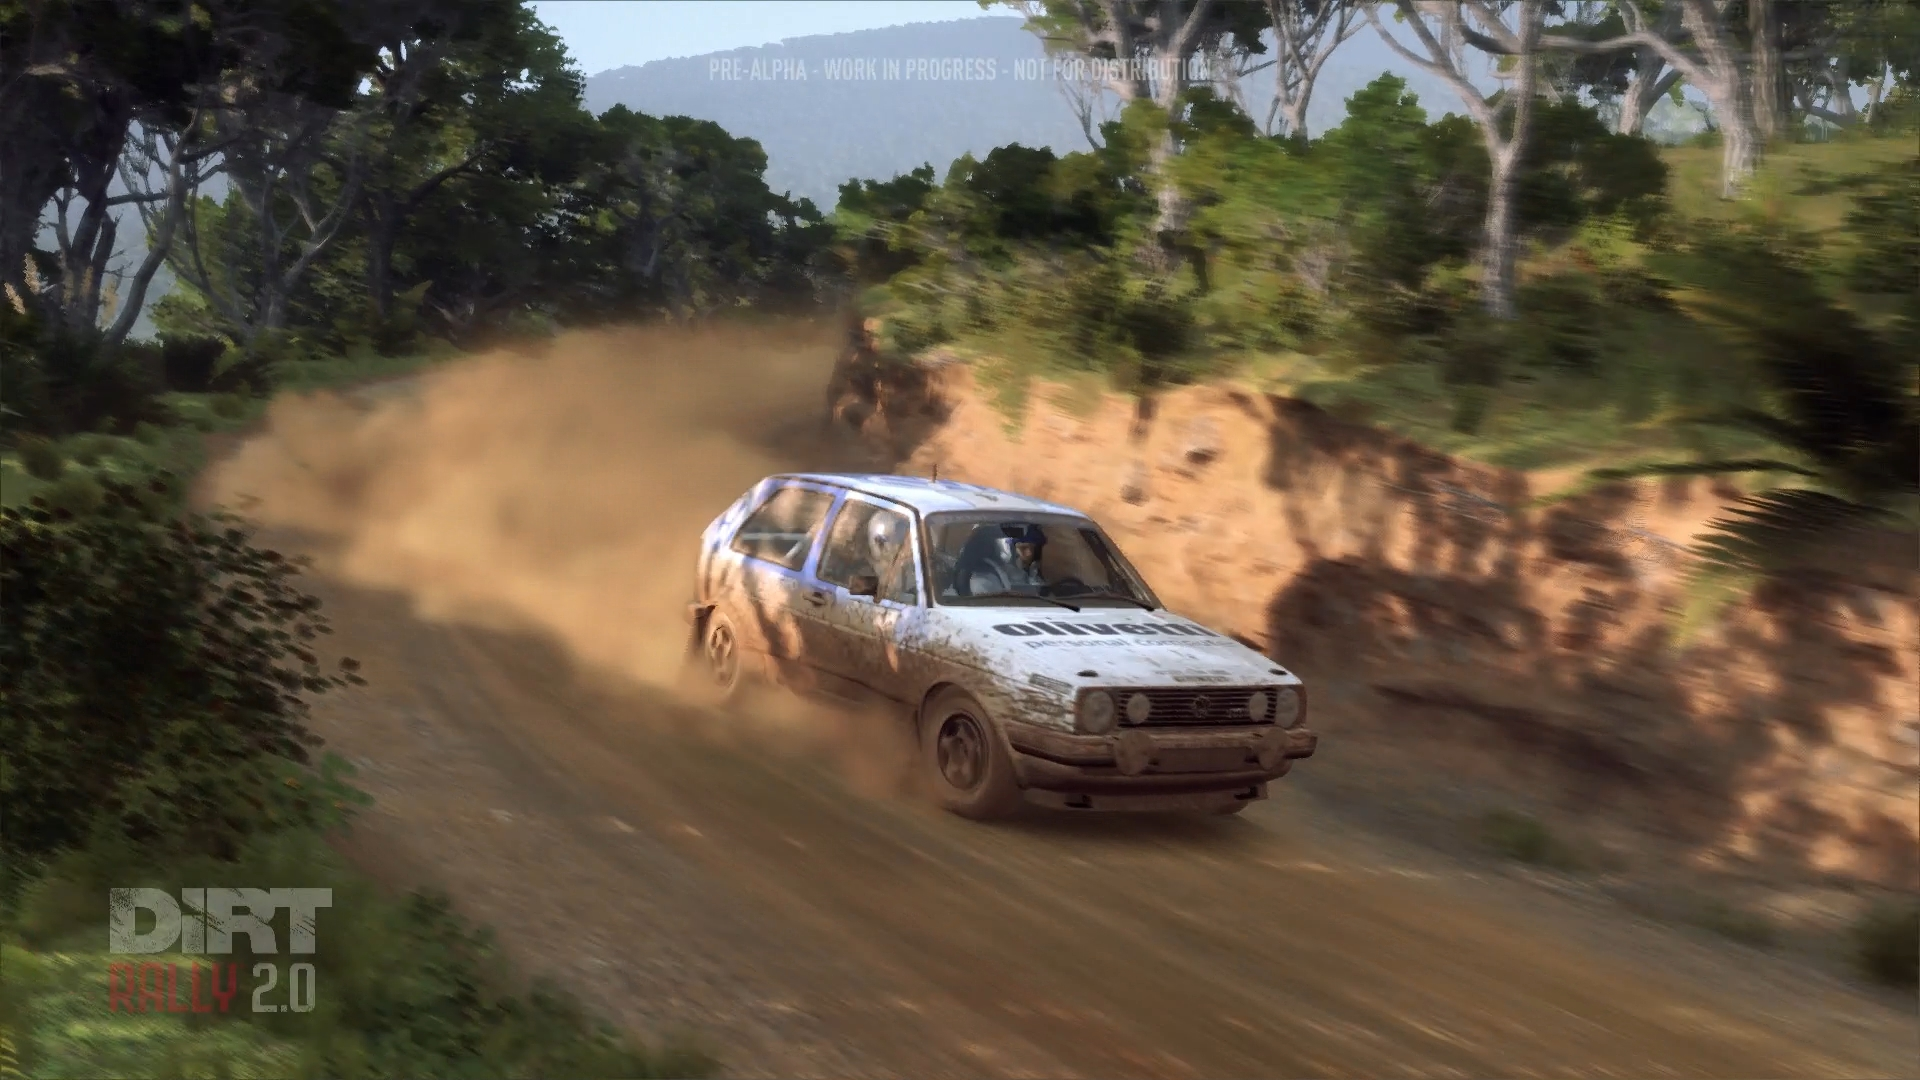 dirt rally 2 0 latest video shows ford mk ii escort in action team vvv. Black Bedroom Furniture Sets. Home Design Ideas